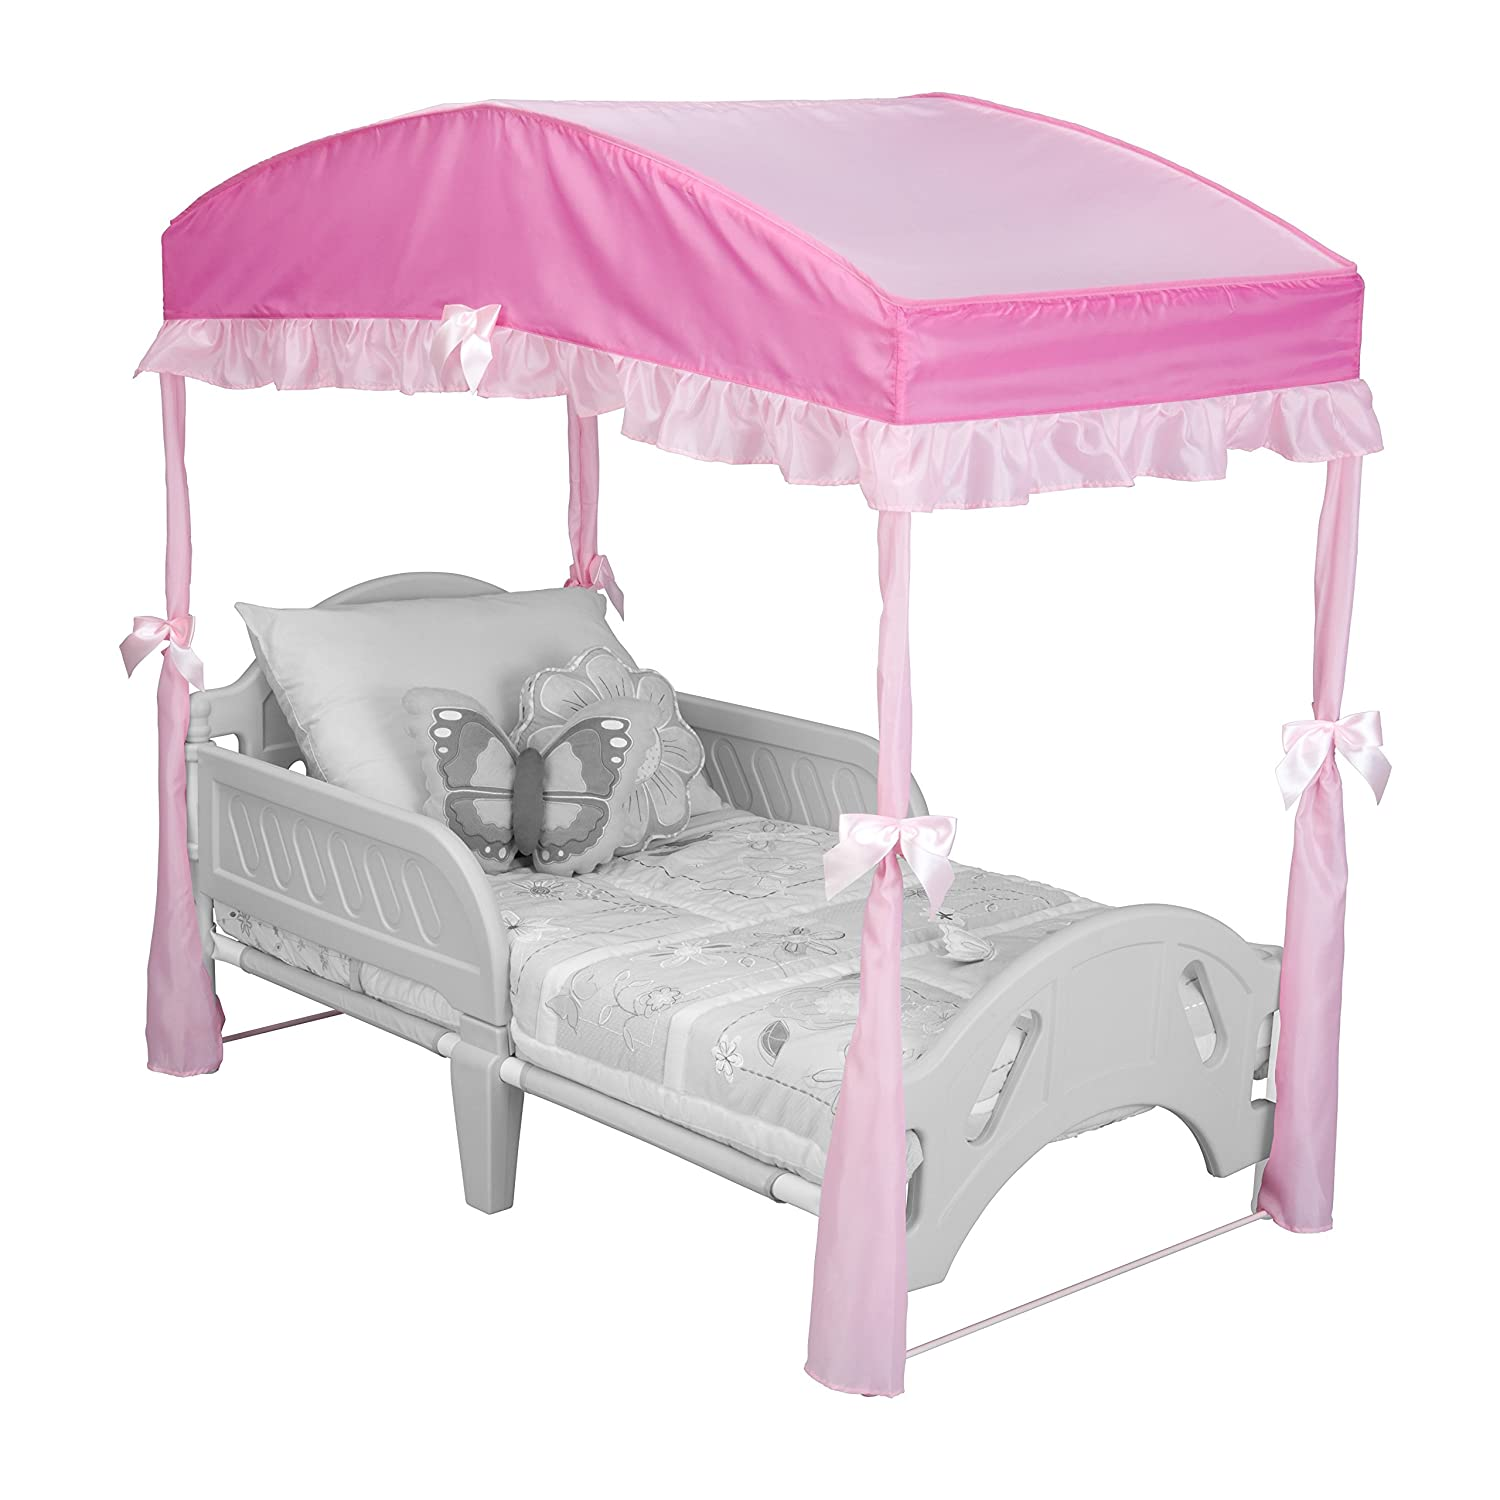 Pink Delta Children Canopy for Toddler Bed